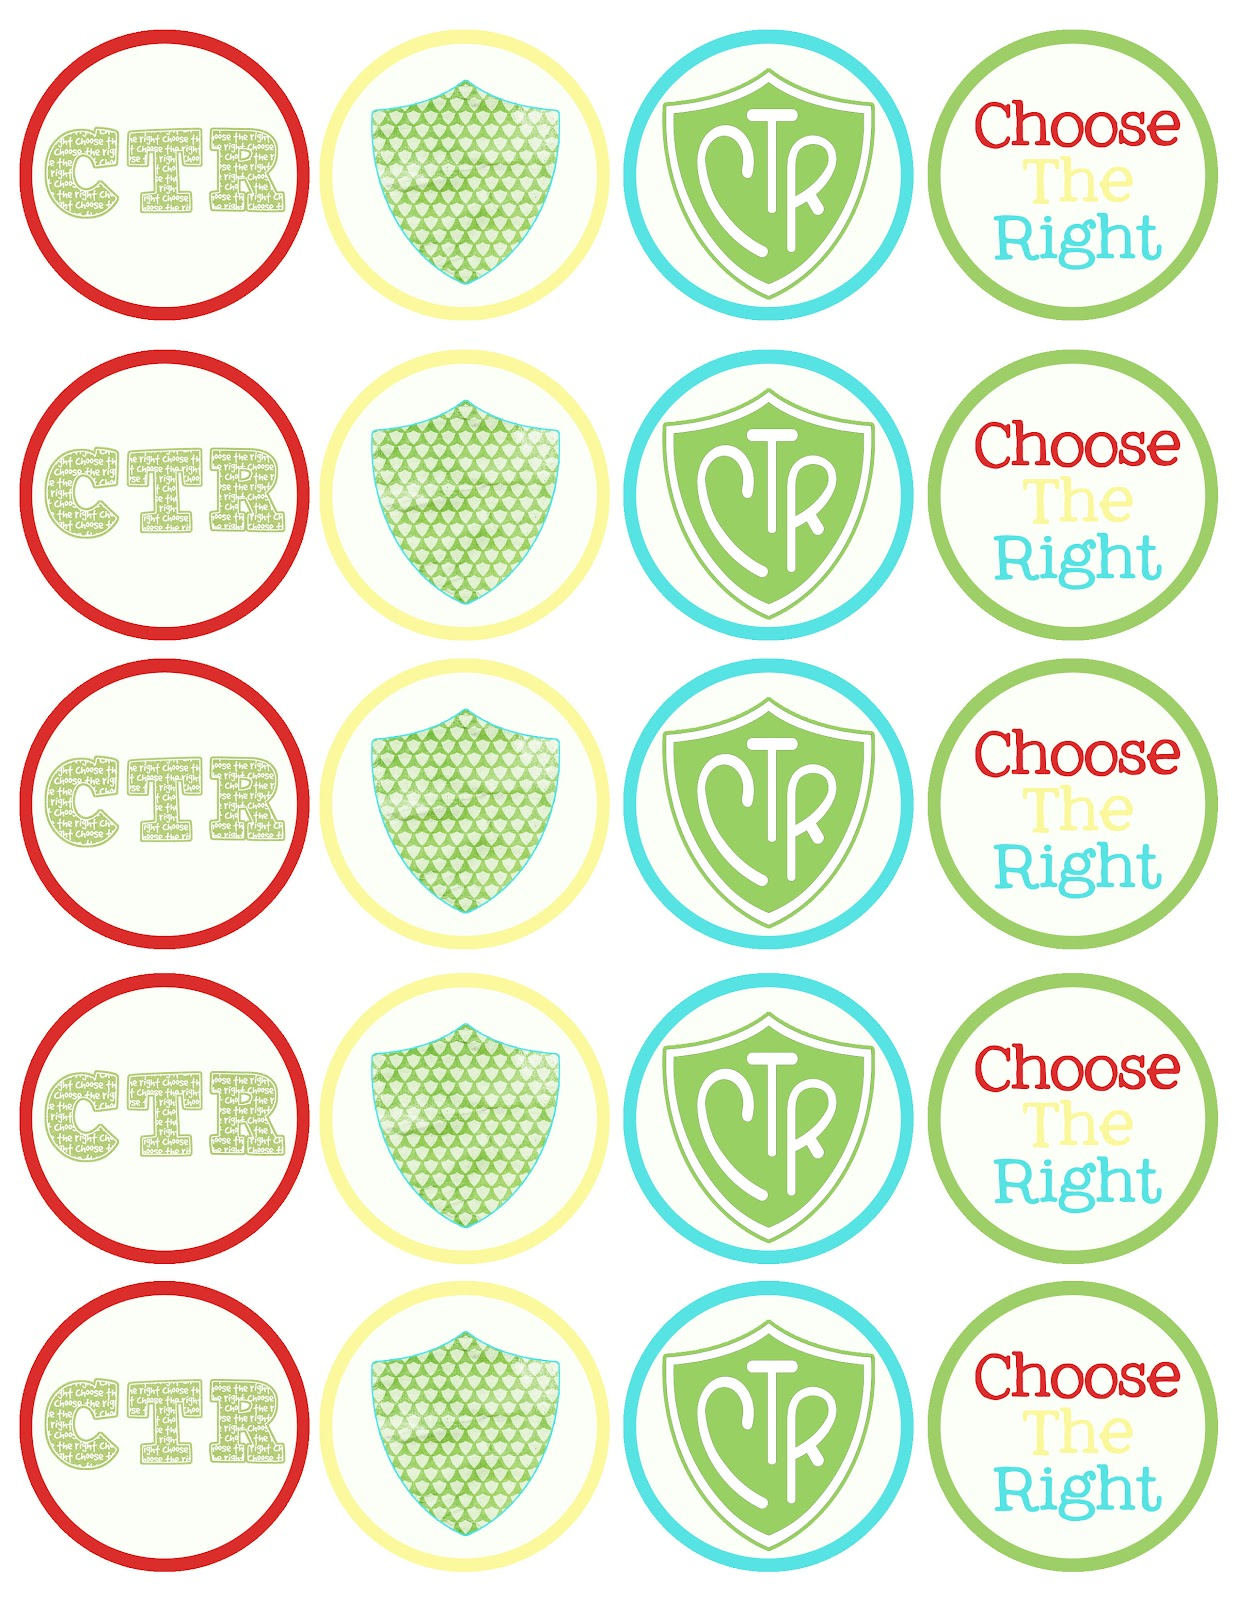 Cupcake Toppers : A Pocket full of LDS prints: CTR cupcake toppers - Free ...